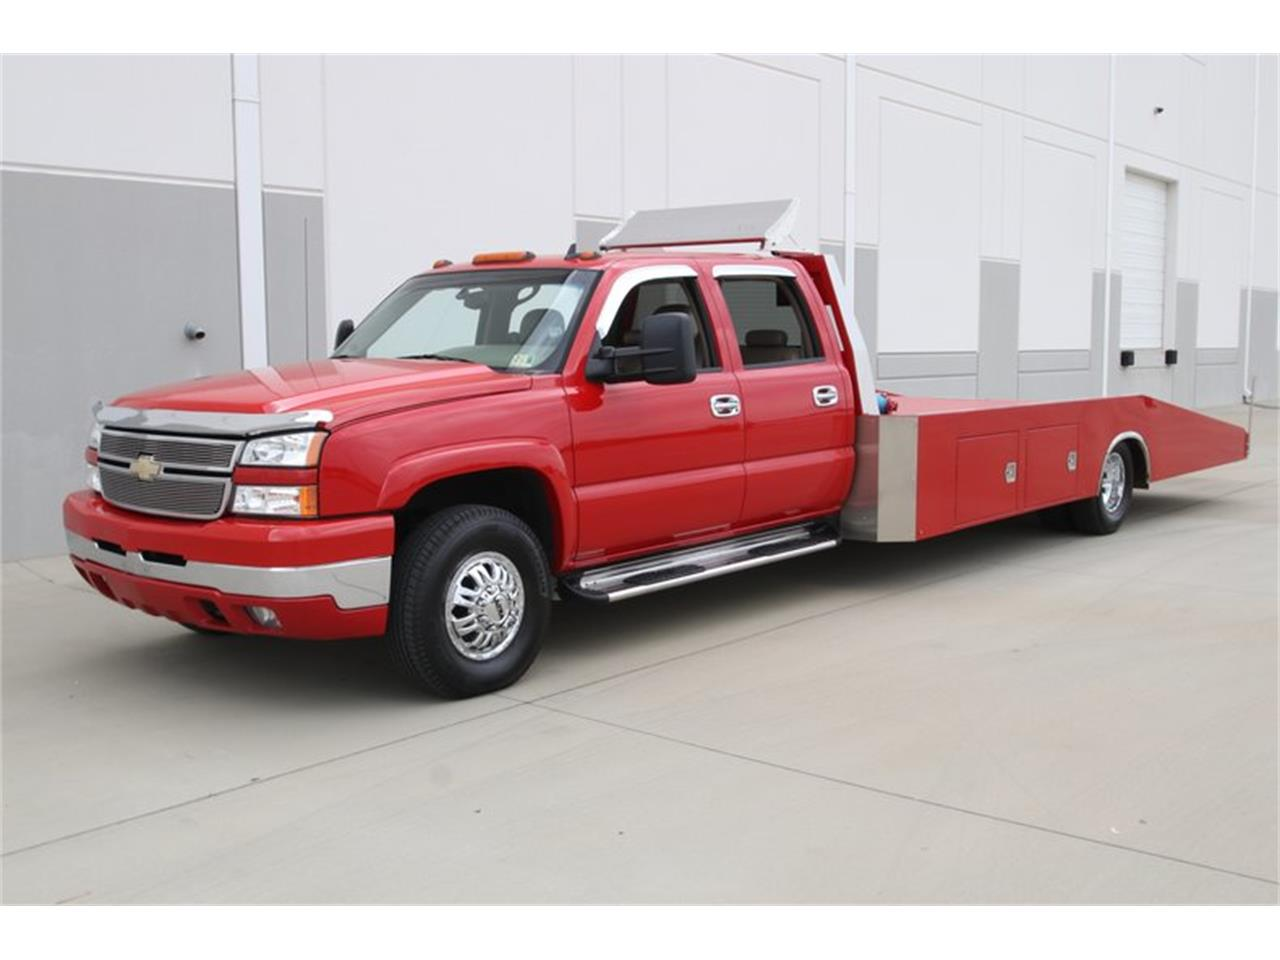 2006 Chevrolet Silverado (CC-1226111) for sale in Concord, North Carolina